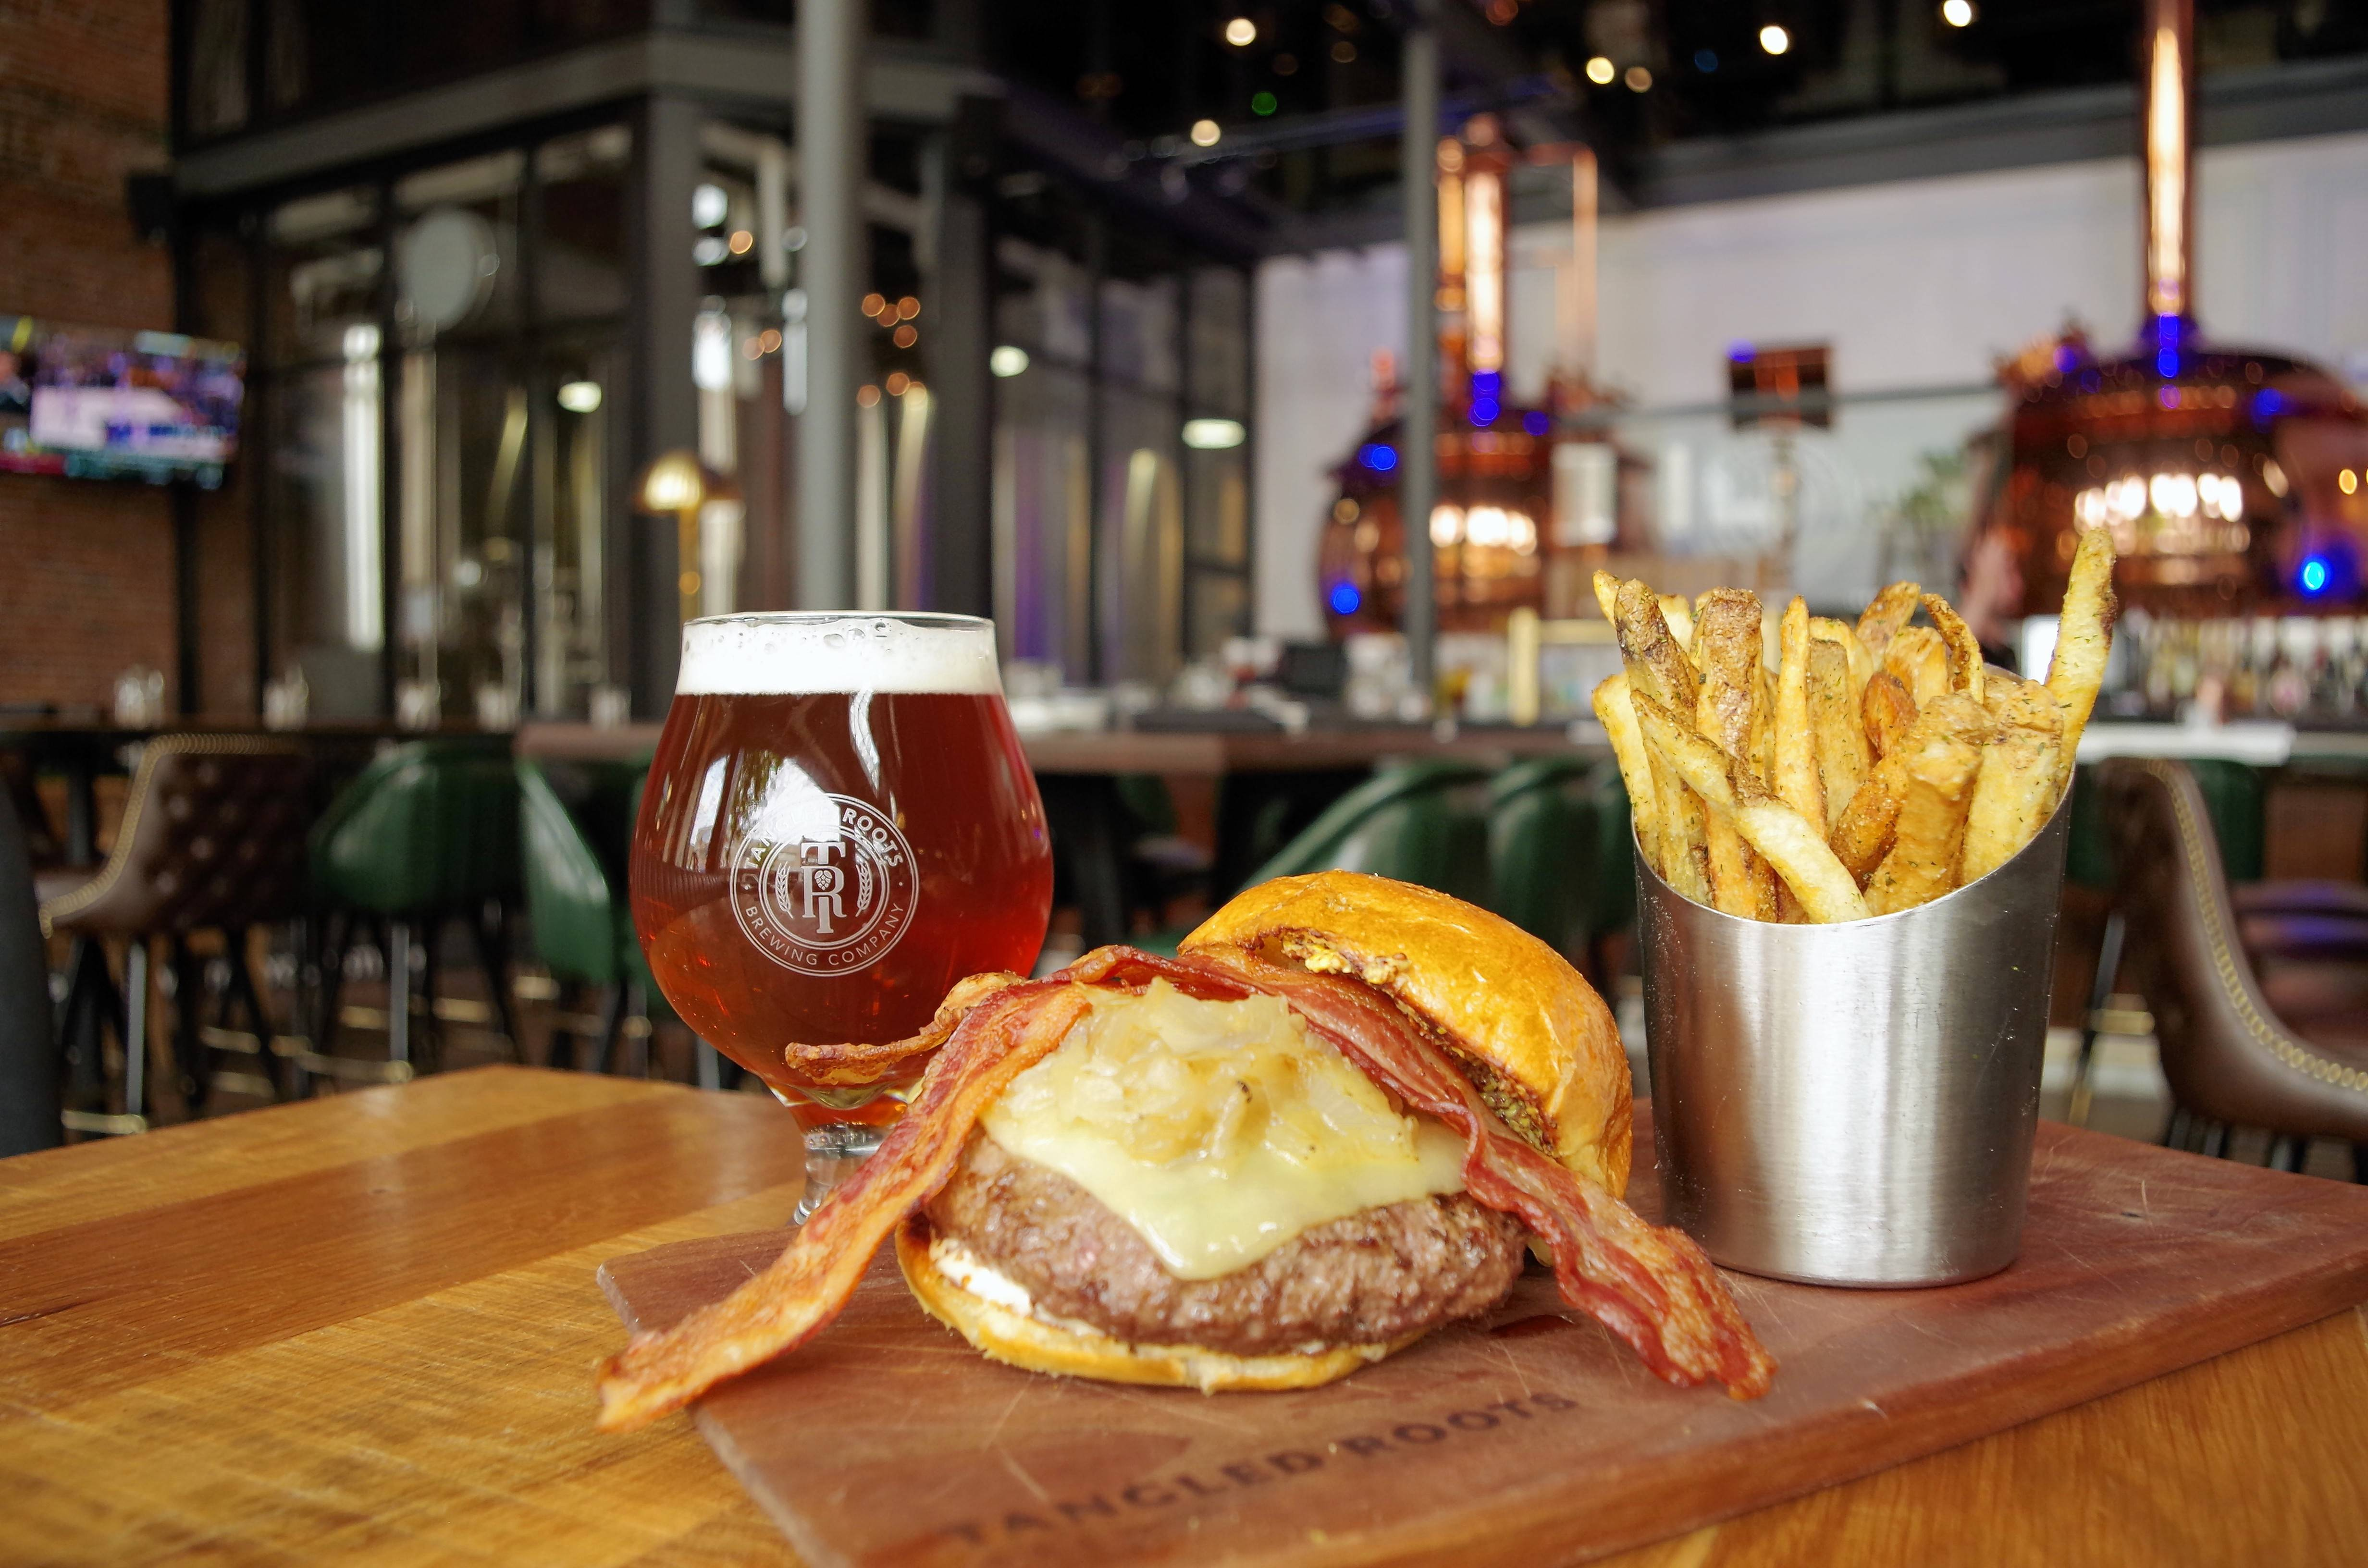 Tangled Roots Brewing Company owns The Lone Buffalo, where diners can get a fantastic burger or a house-made sausage and cheese platter.